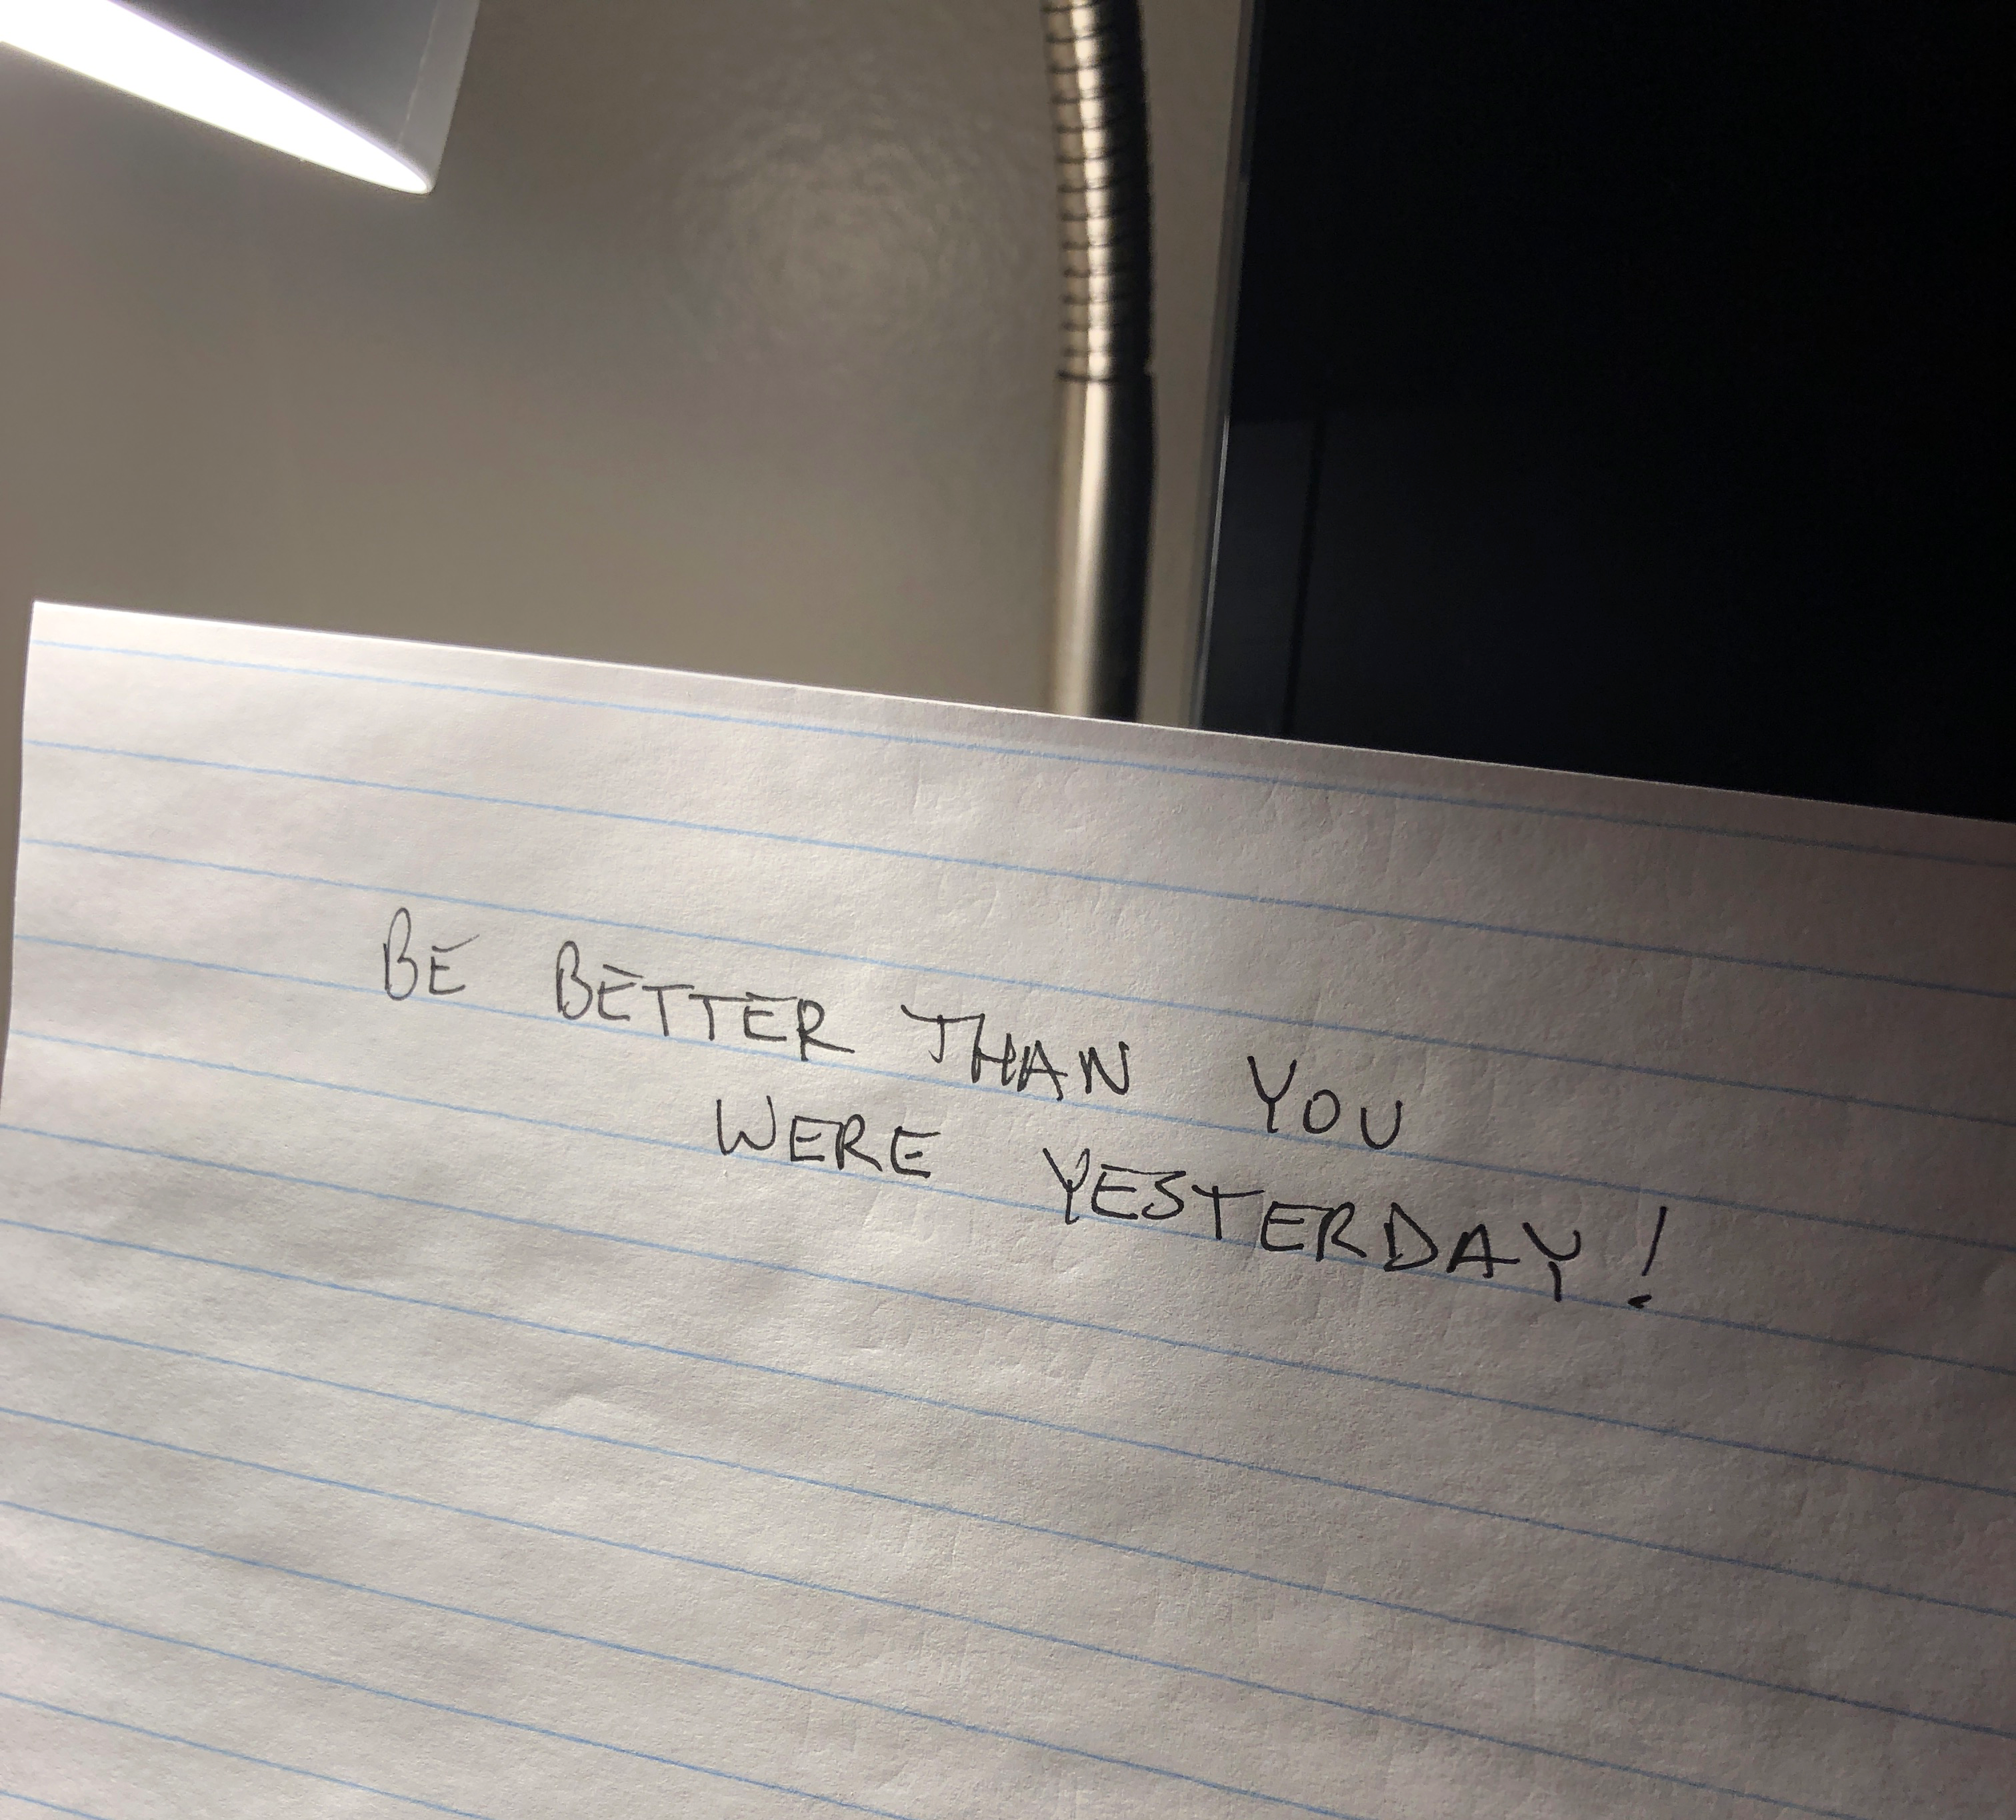 A piece of paper on my side table that reads, 'Be better than you were yesterday'.